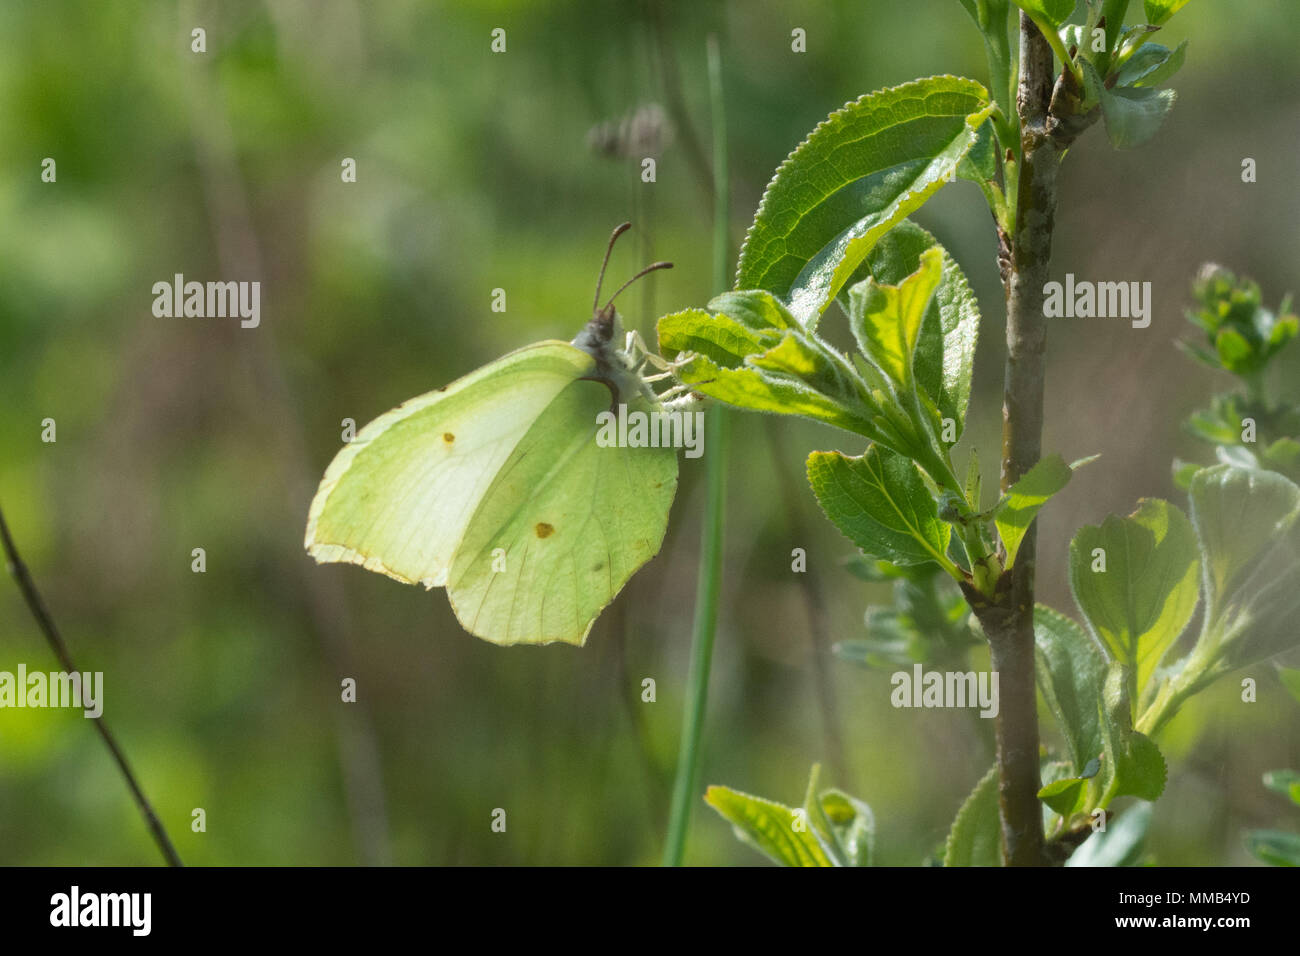 Brimstone butterfly (Gonepteryx rhamni) ovipositing (laying eggs) on alder buckthorn (Frangula alnus) in Hampshire, UK Stock Photo